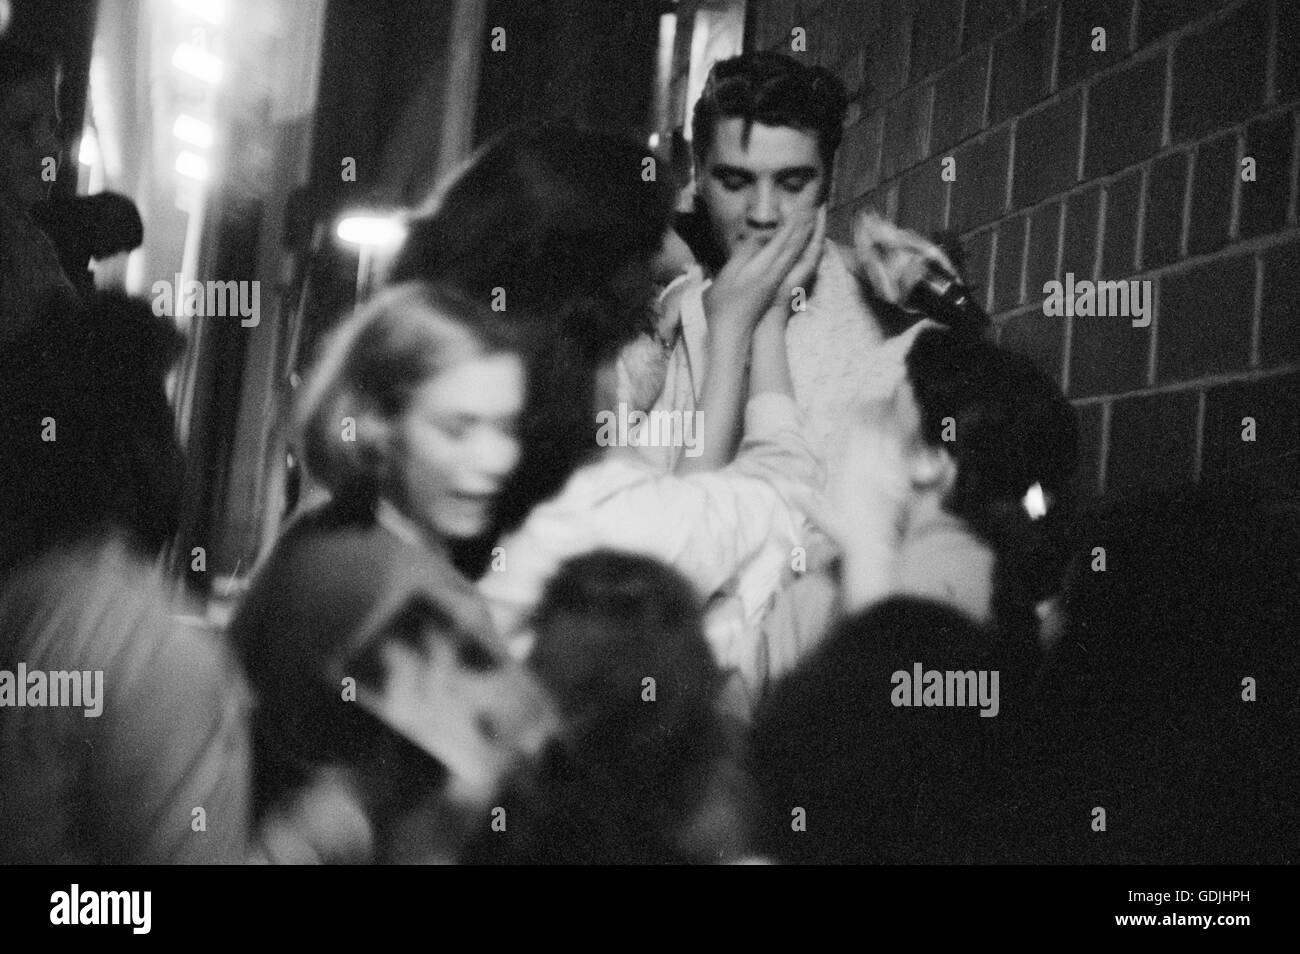 Elvis Presley mobbed by fans after a performance at the University of Dayton Fieldhouse, May 27, 1956. Stock Photo